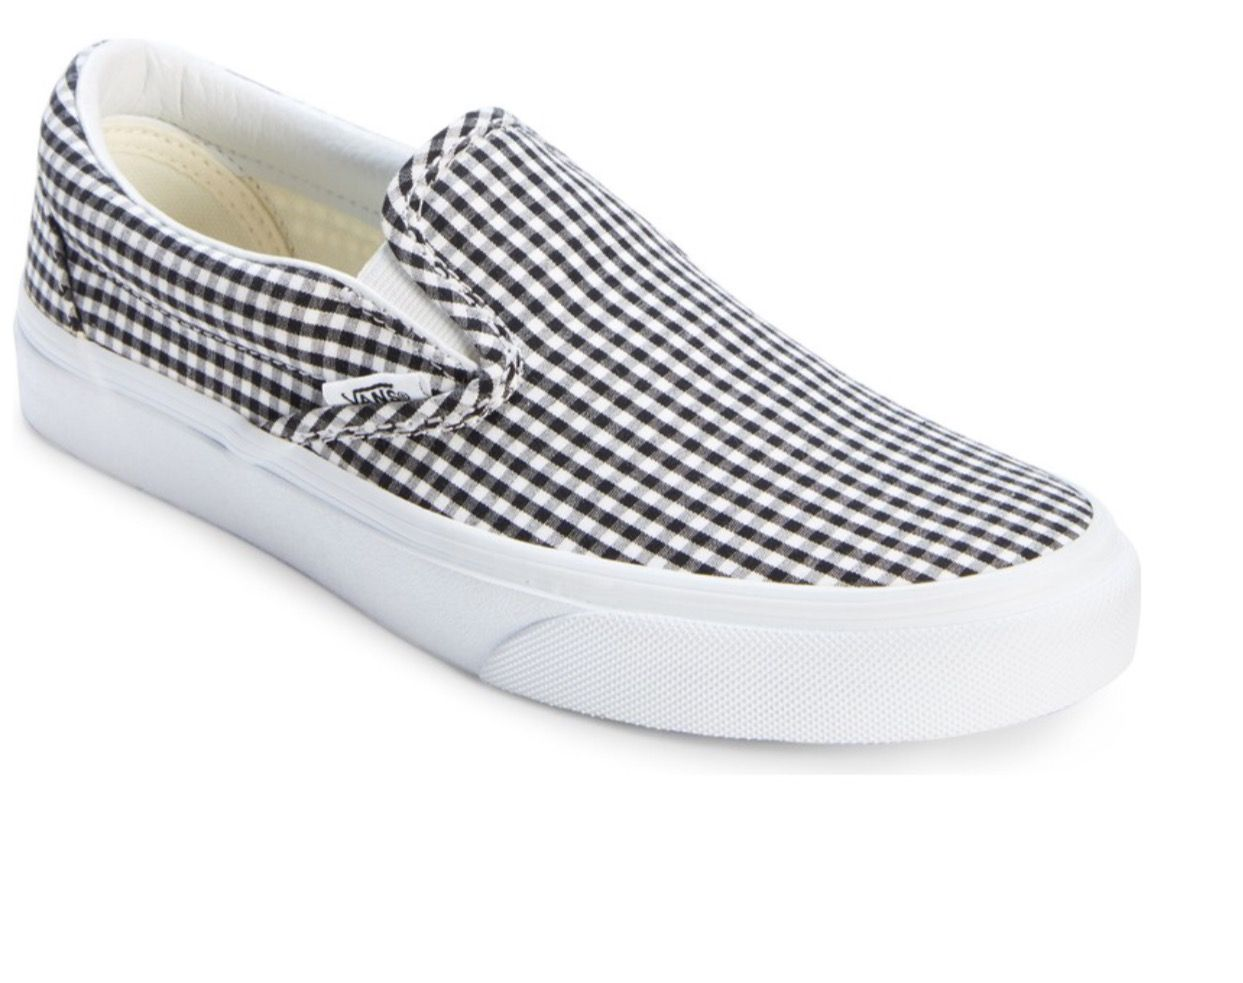 99096c8c73 Vans  gingham slip on sneakers. (Sold out on nordstrom.com)